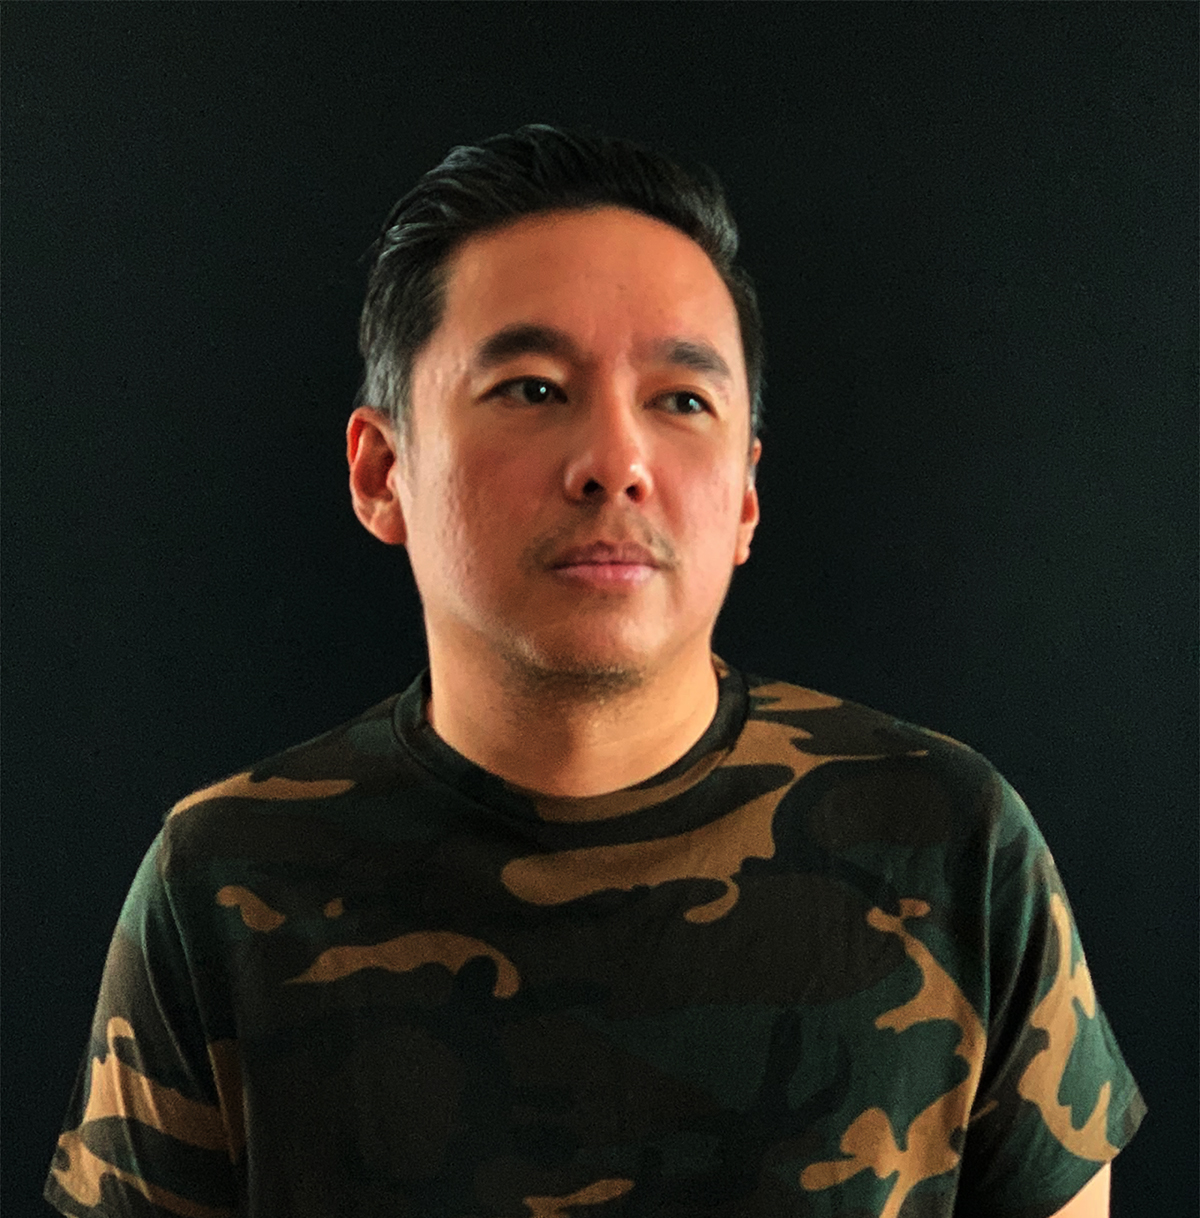 How I Become An Online Filipino Worker (OFW) And Design For The World's Biggest Brands